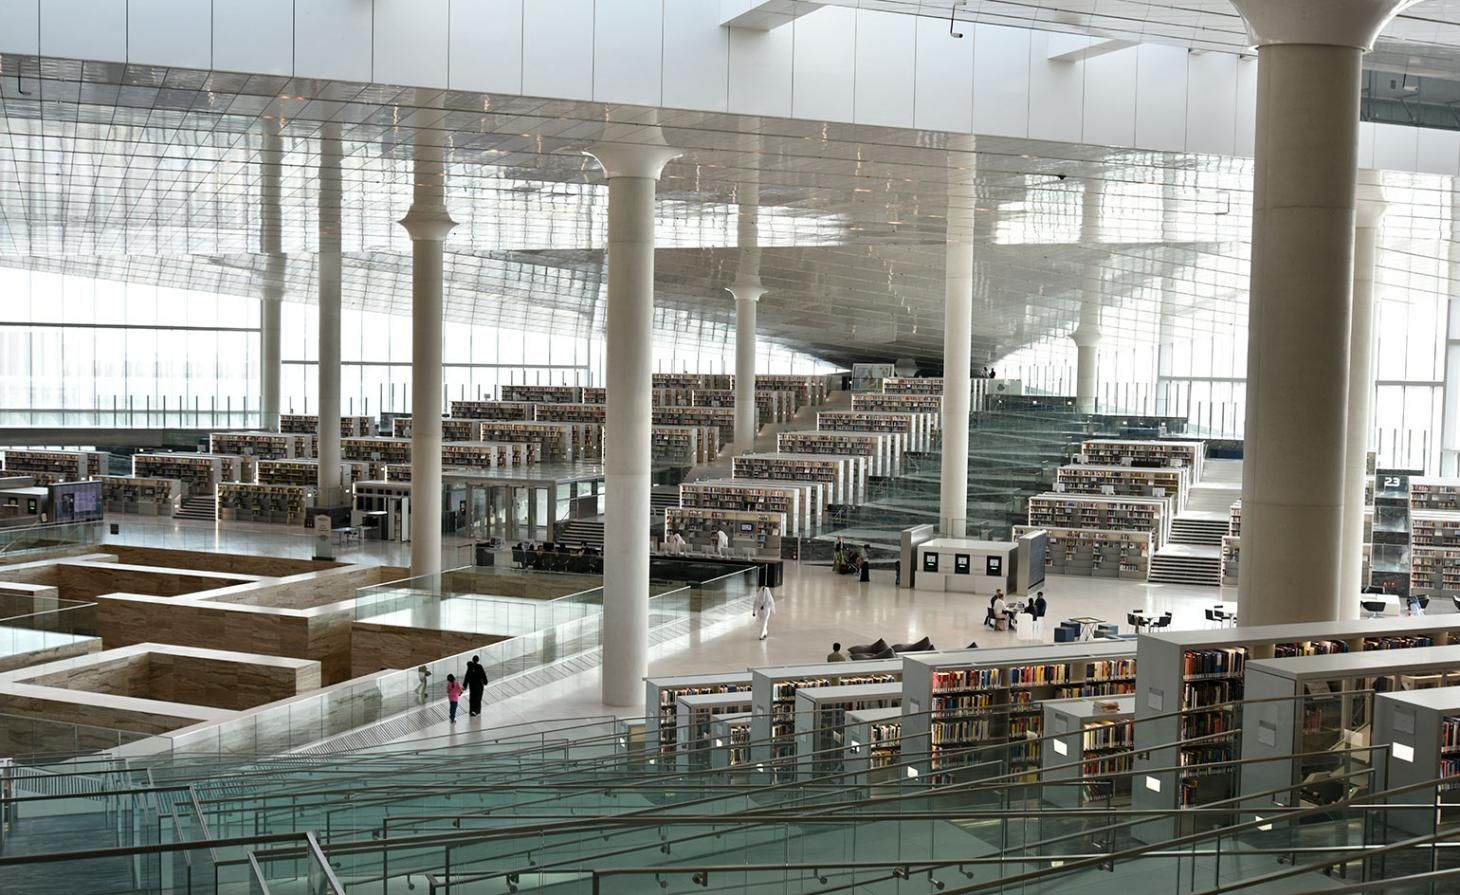 Inside Oma S Qatar National Library Architecture Architecture